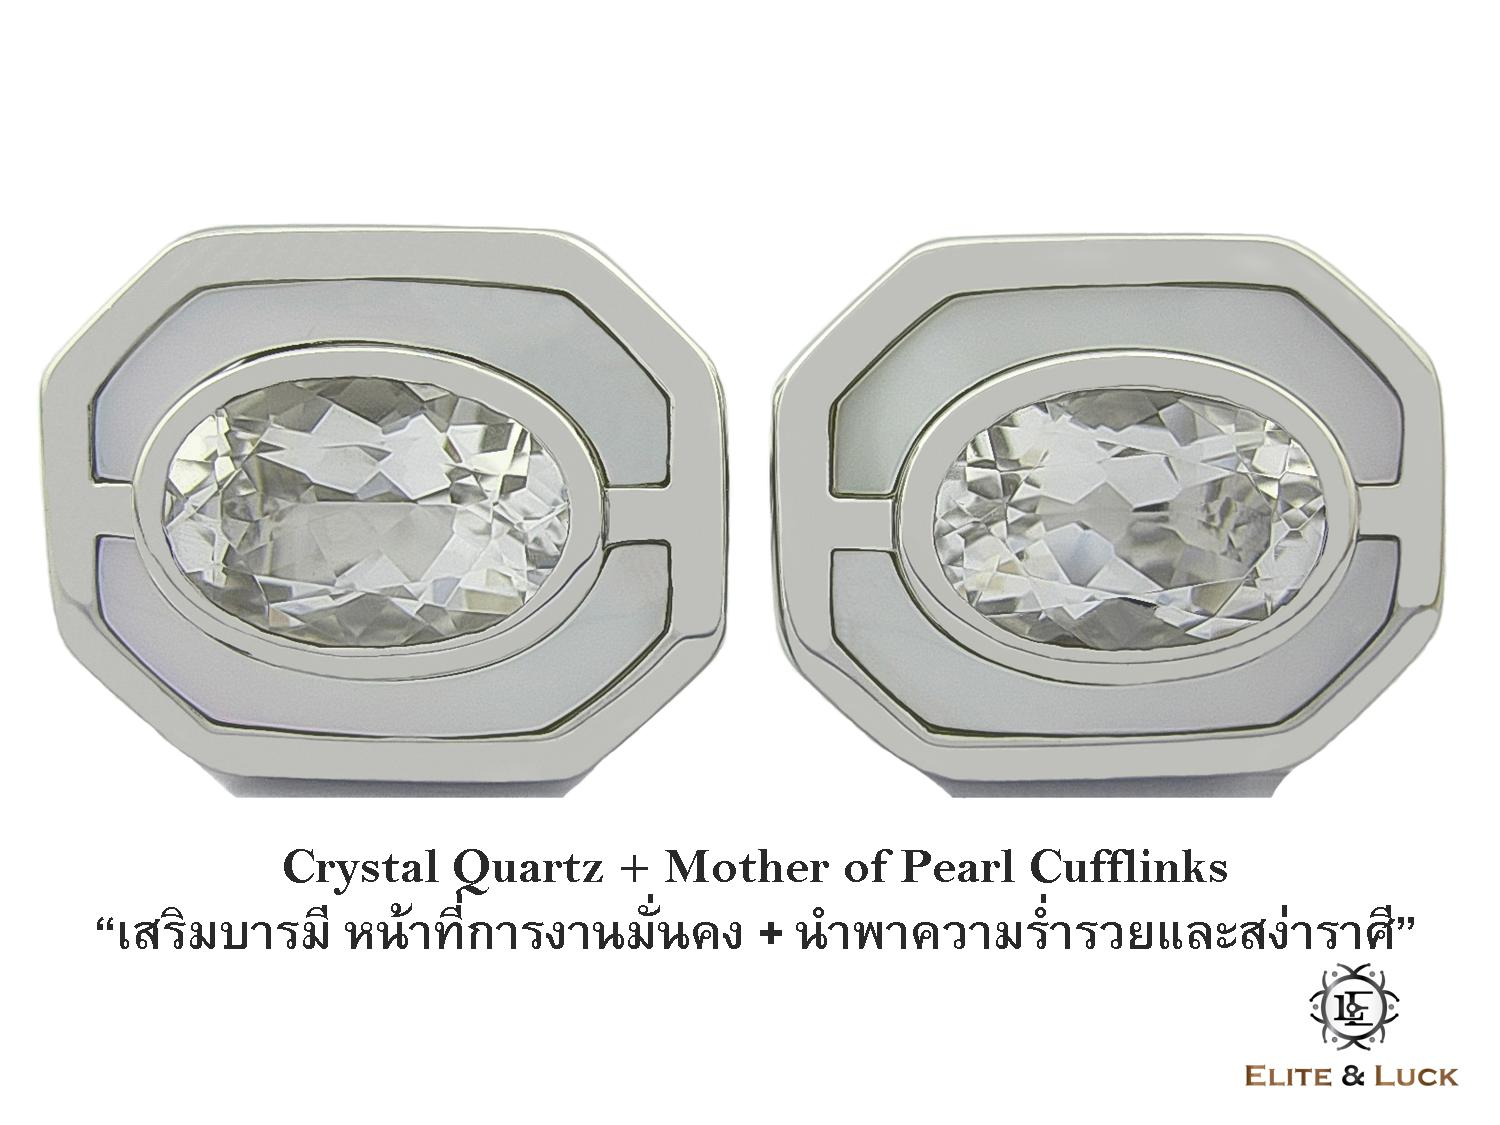 Crystal Quartz + Mother of Pearl Sterling Silver Cufflinks สี Rhodium รุ่น Charming